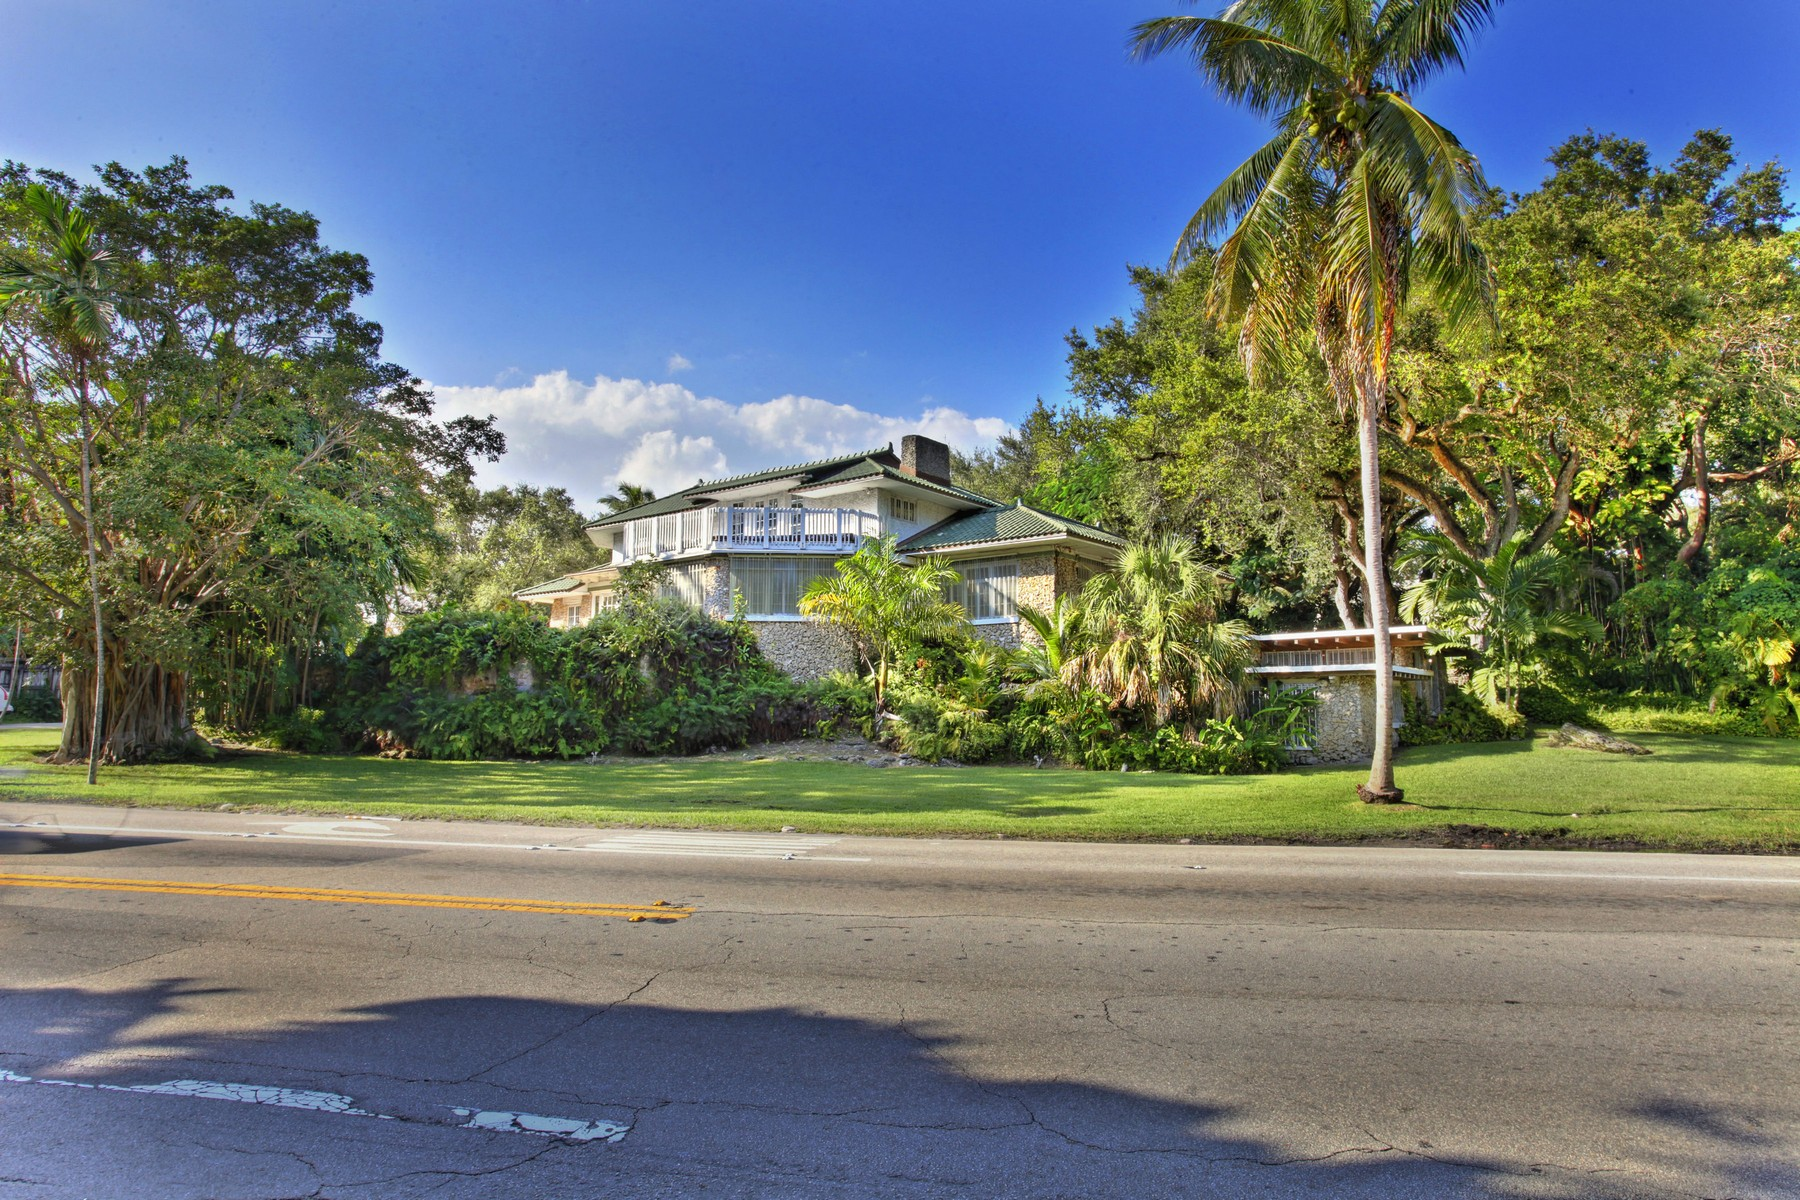 Single Family Home for Sale at 1665 S Bayshore Dr Coconut Grove, Florida, 33133 United States